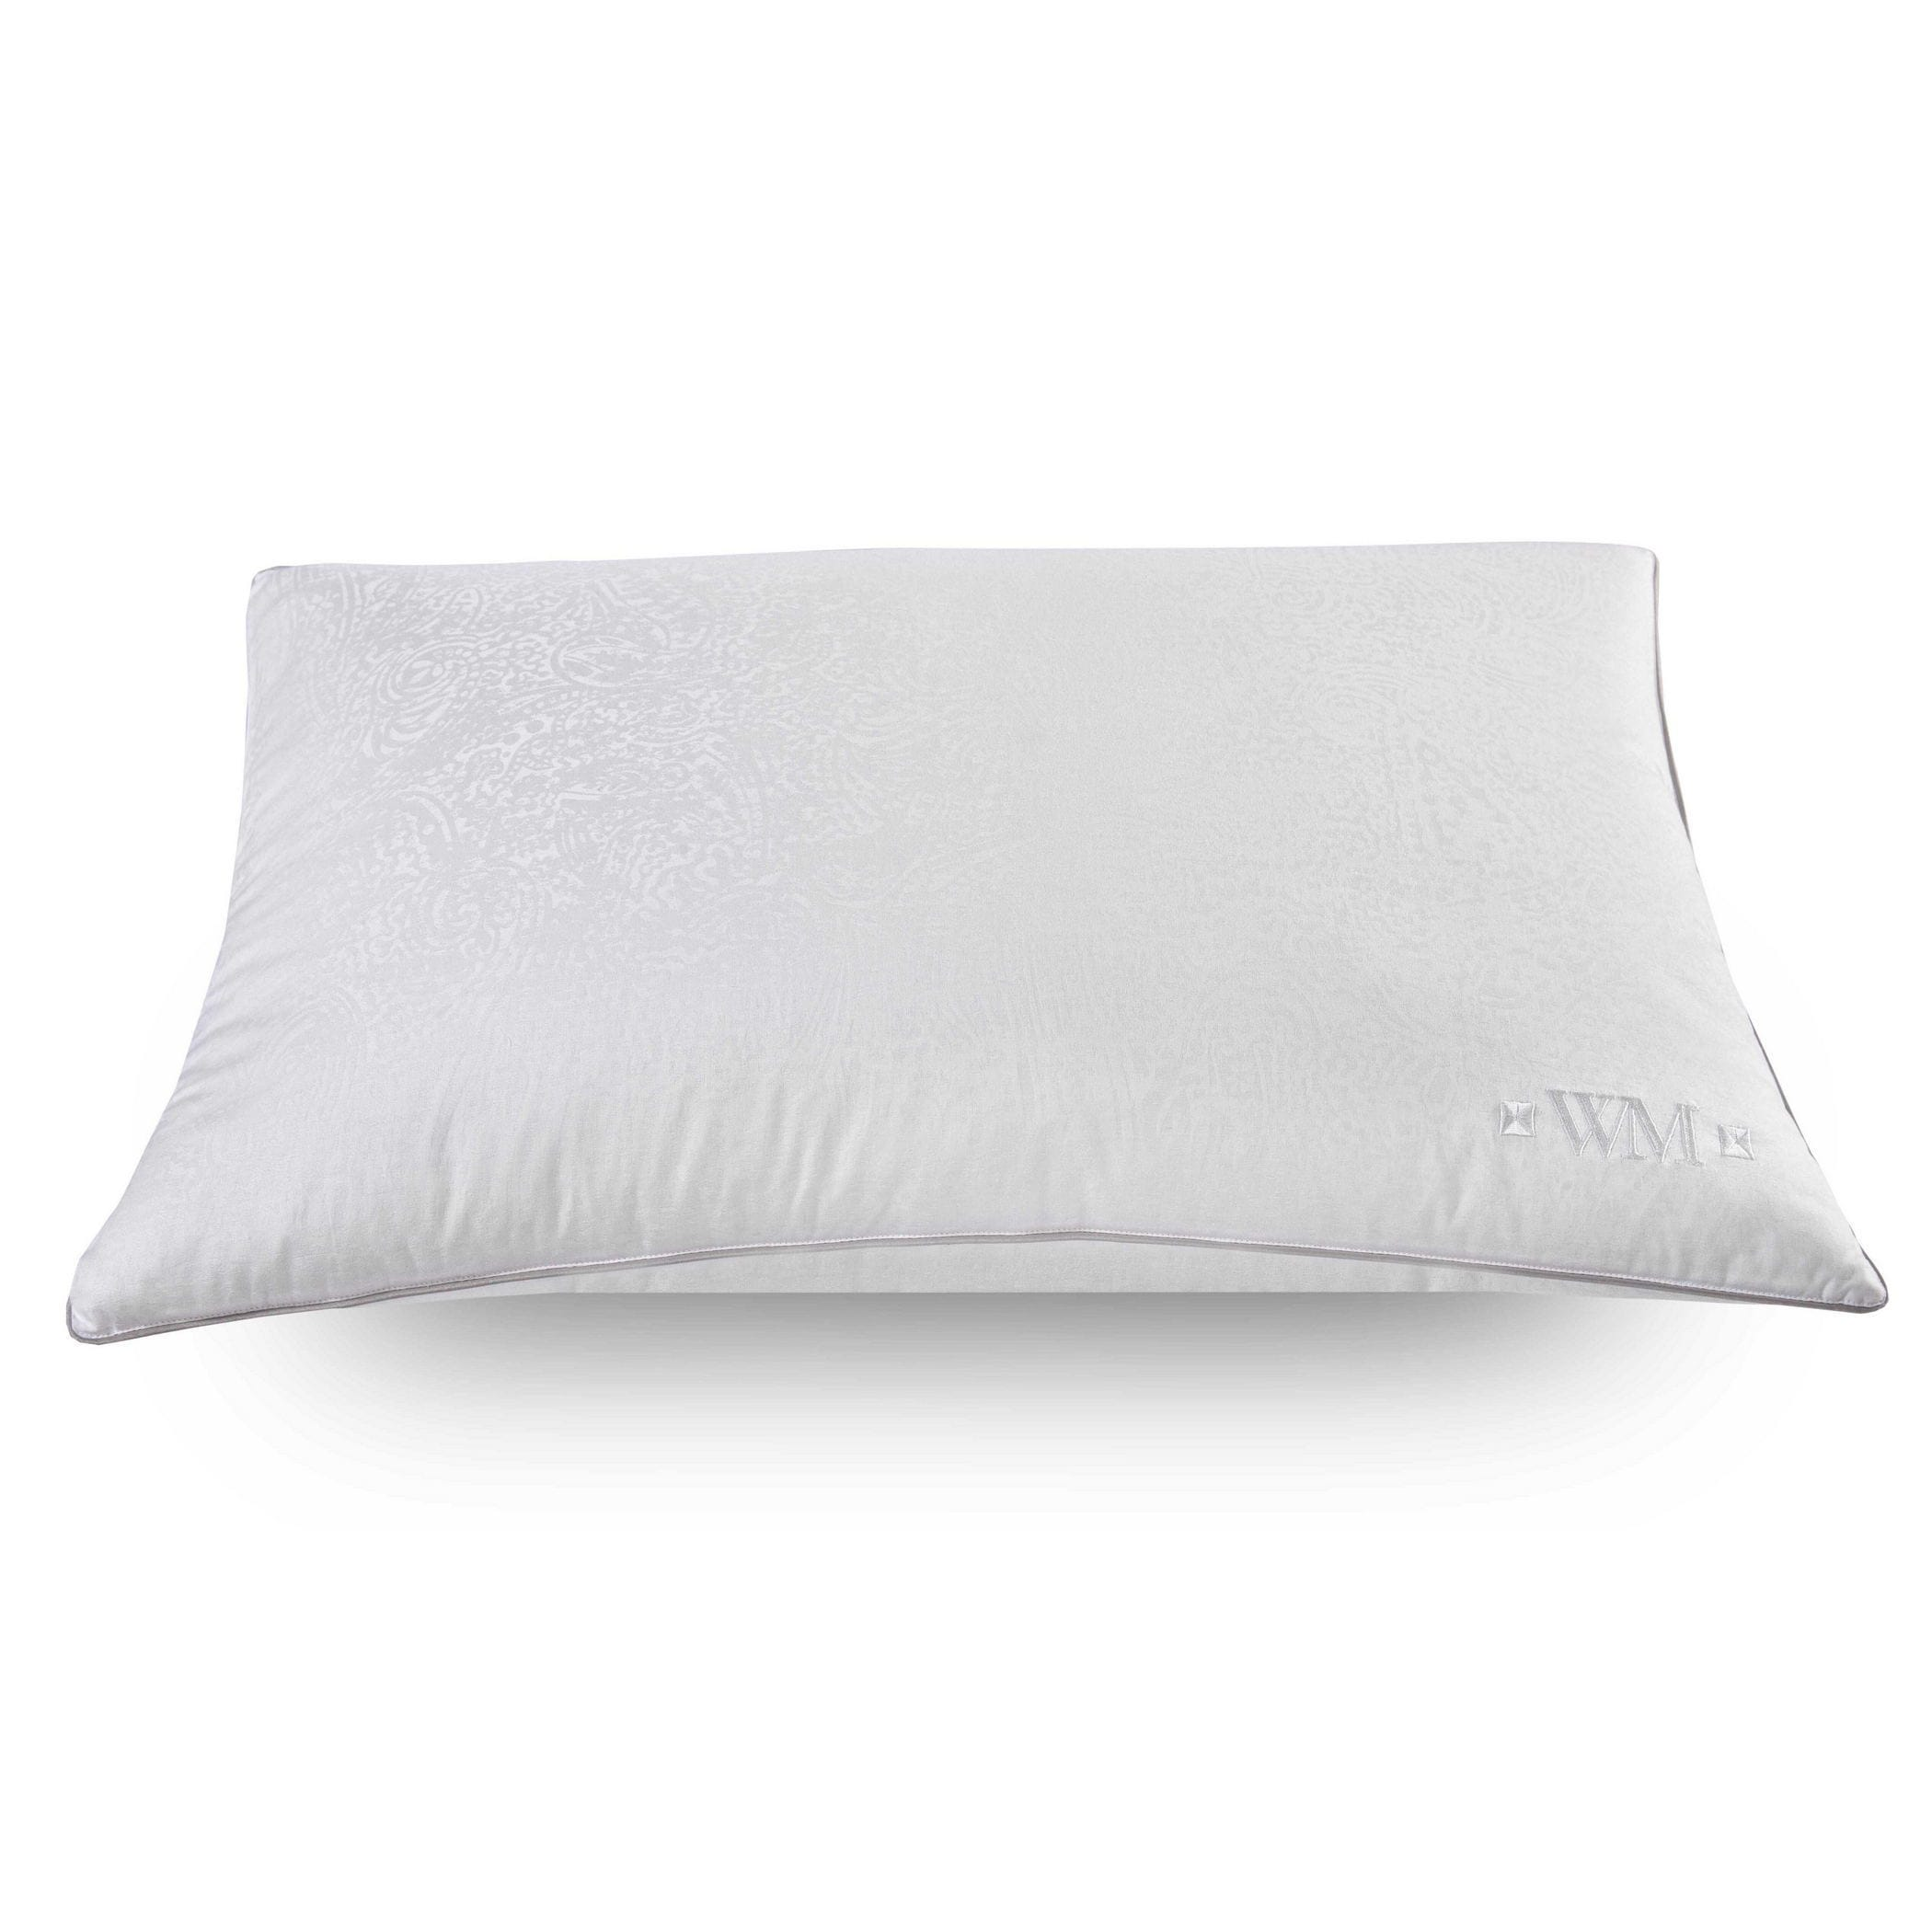 pillowmattressmattresses products clothing electronics com furniture signature a shopping side bed online more jewelry bedding overstock pillow protect sleeper pinterest pin pillows